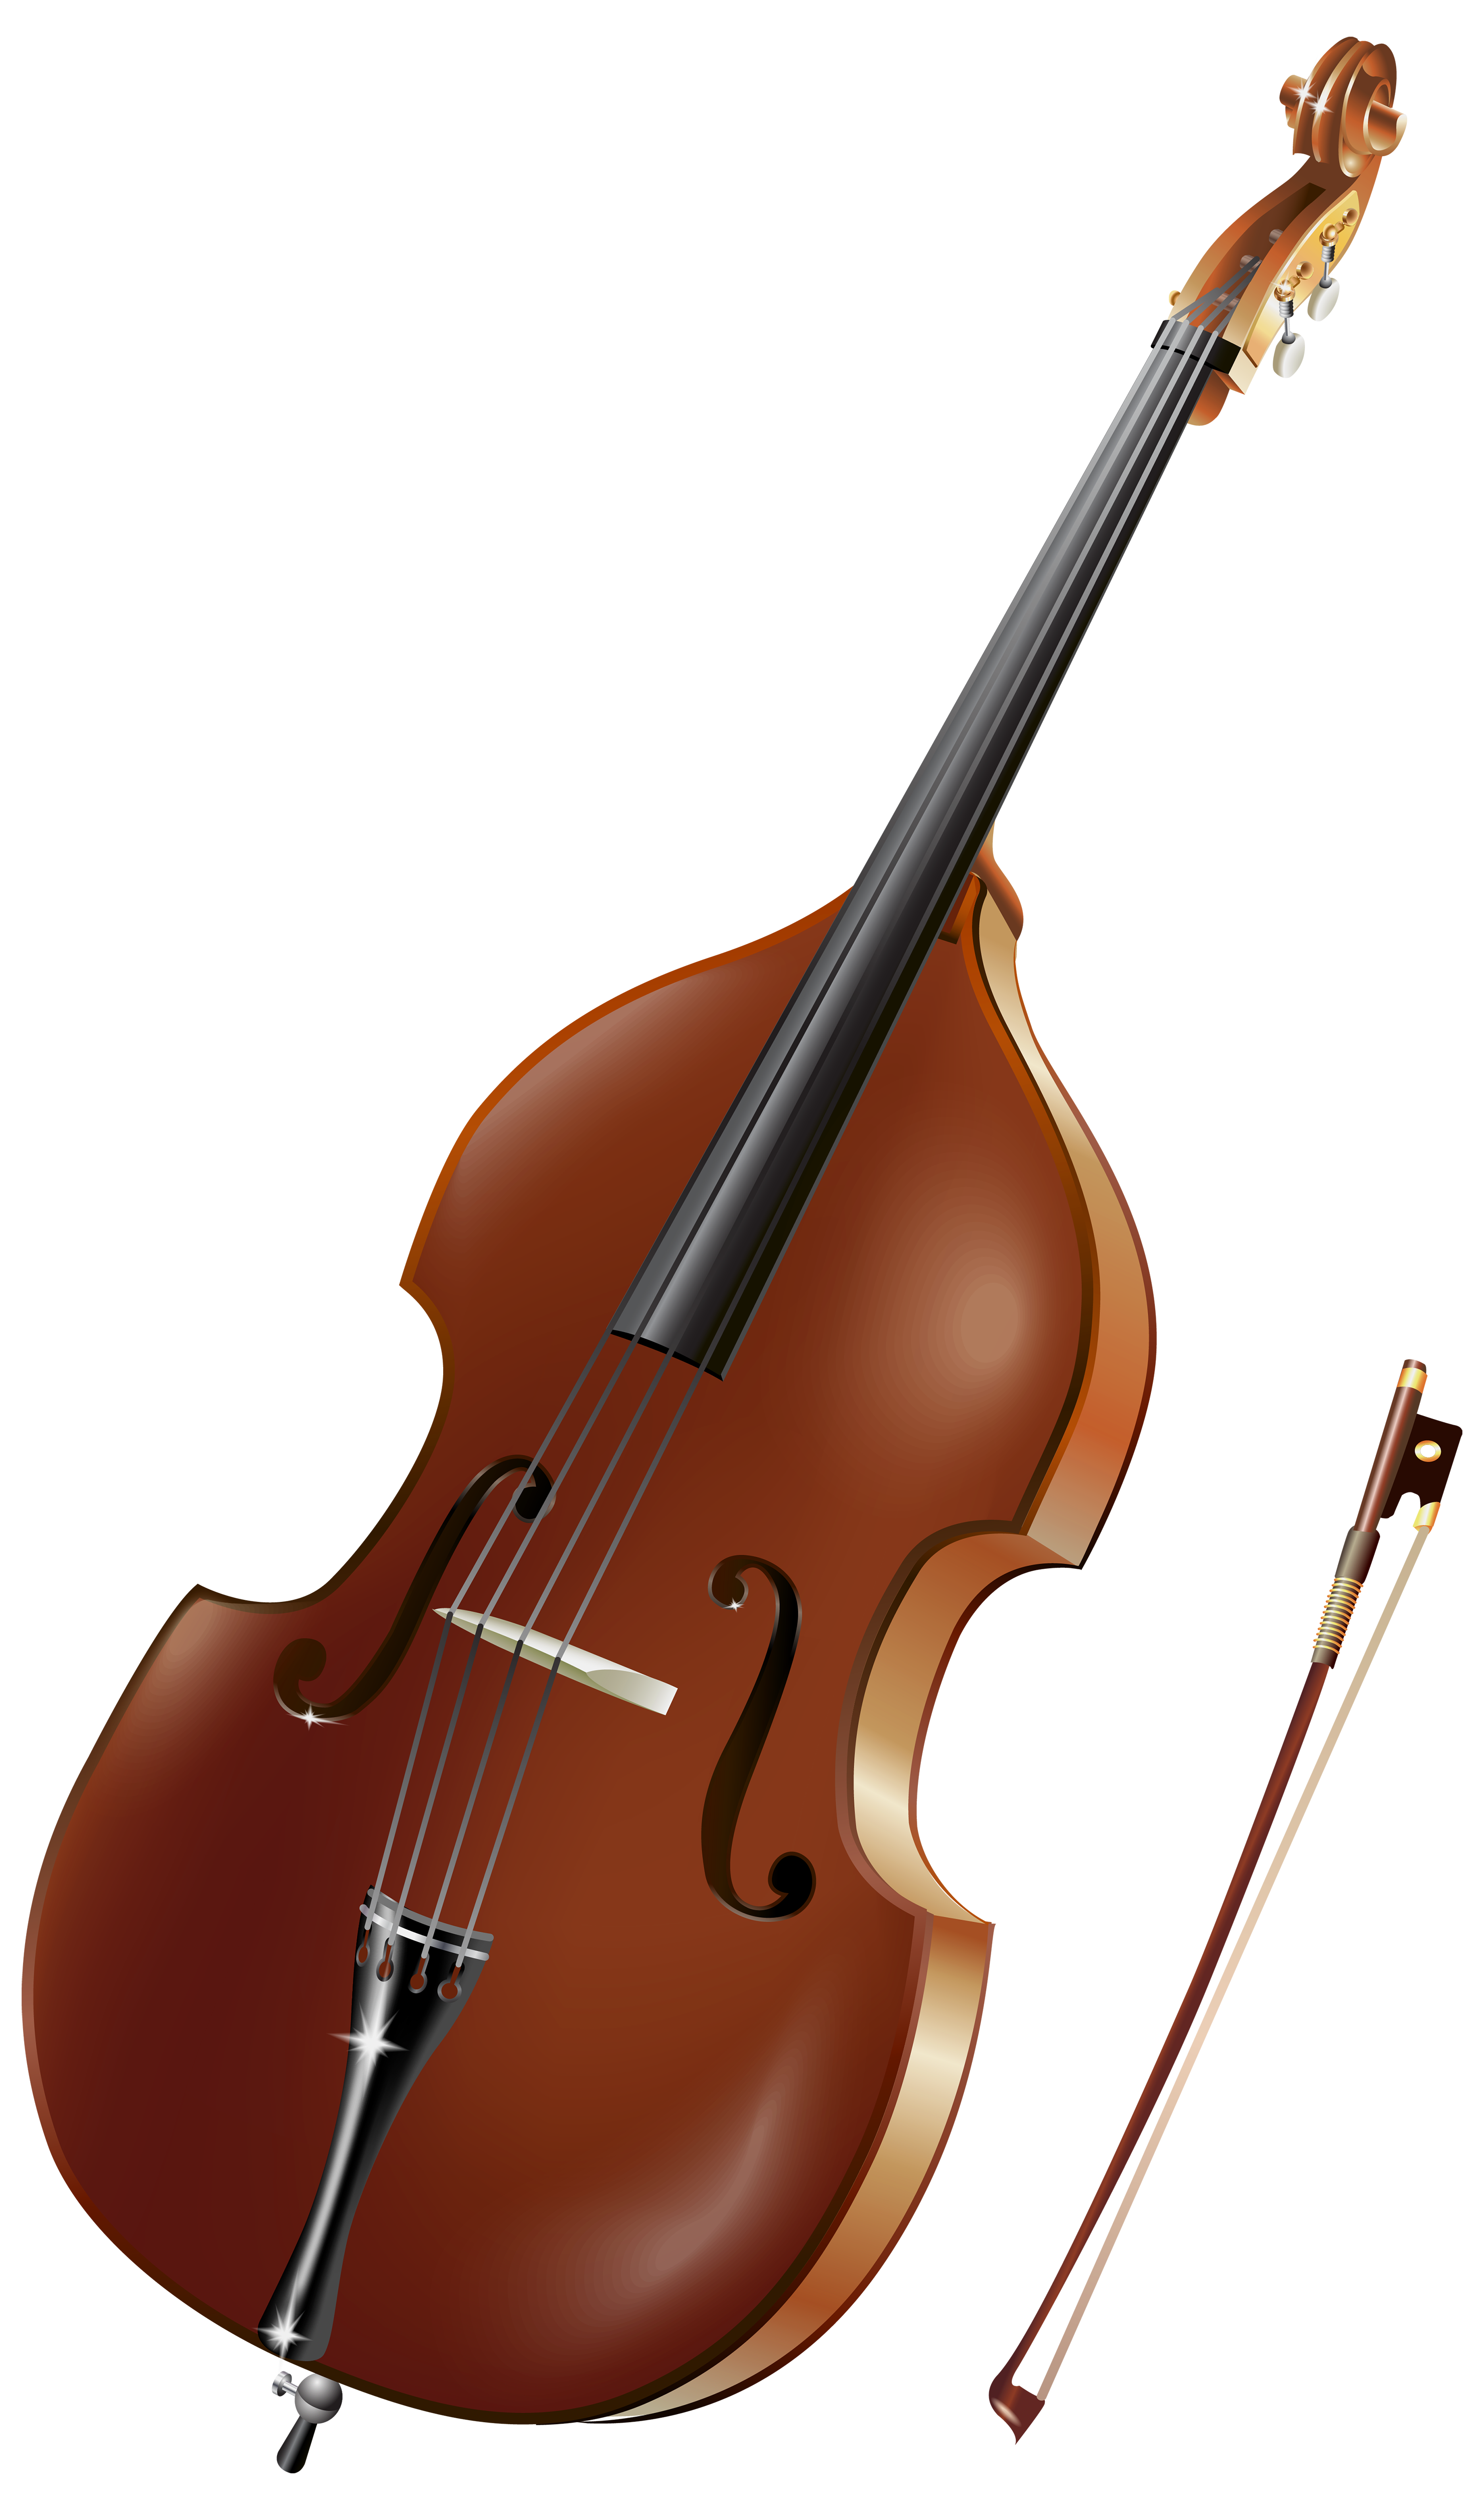 Cello clipart double bass. Violin musical instruments clip